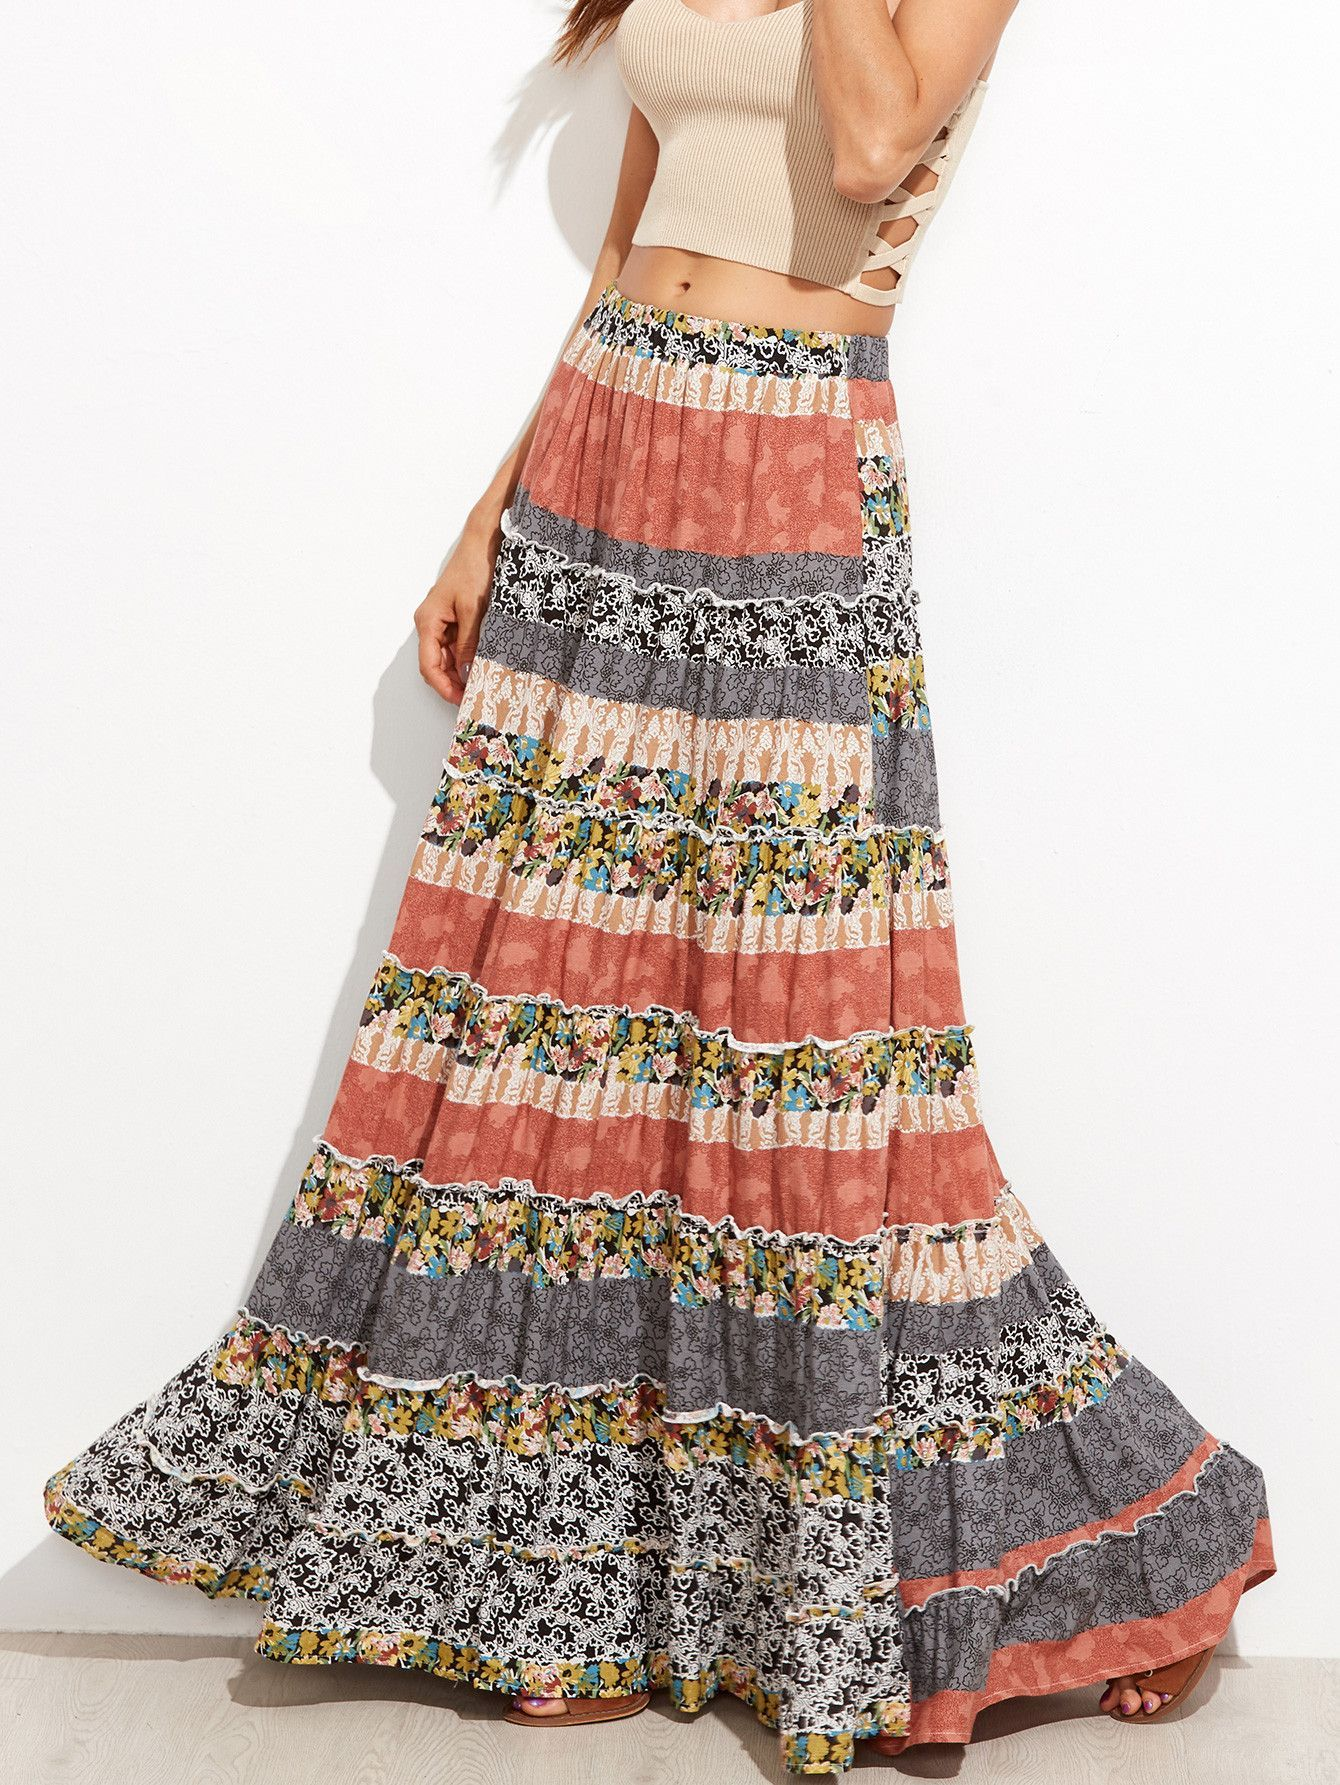 Floral boho maxi skirt summer patterns ruffle dress and silhouettes